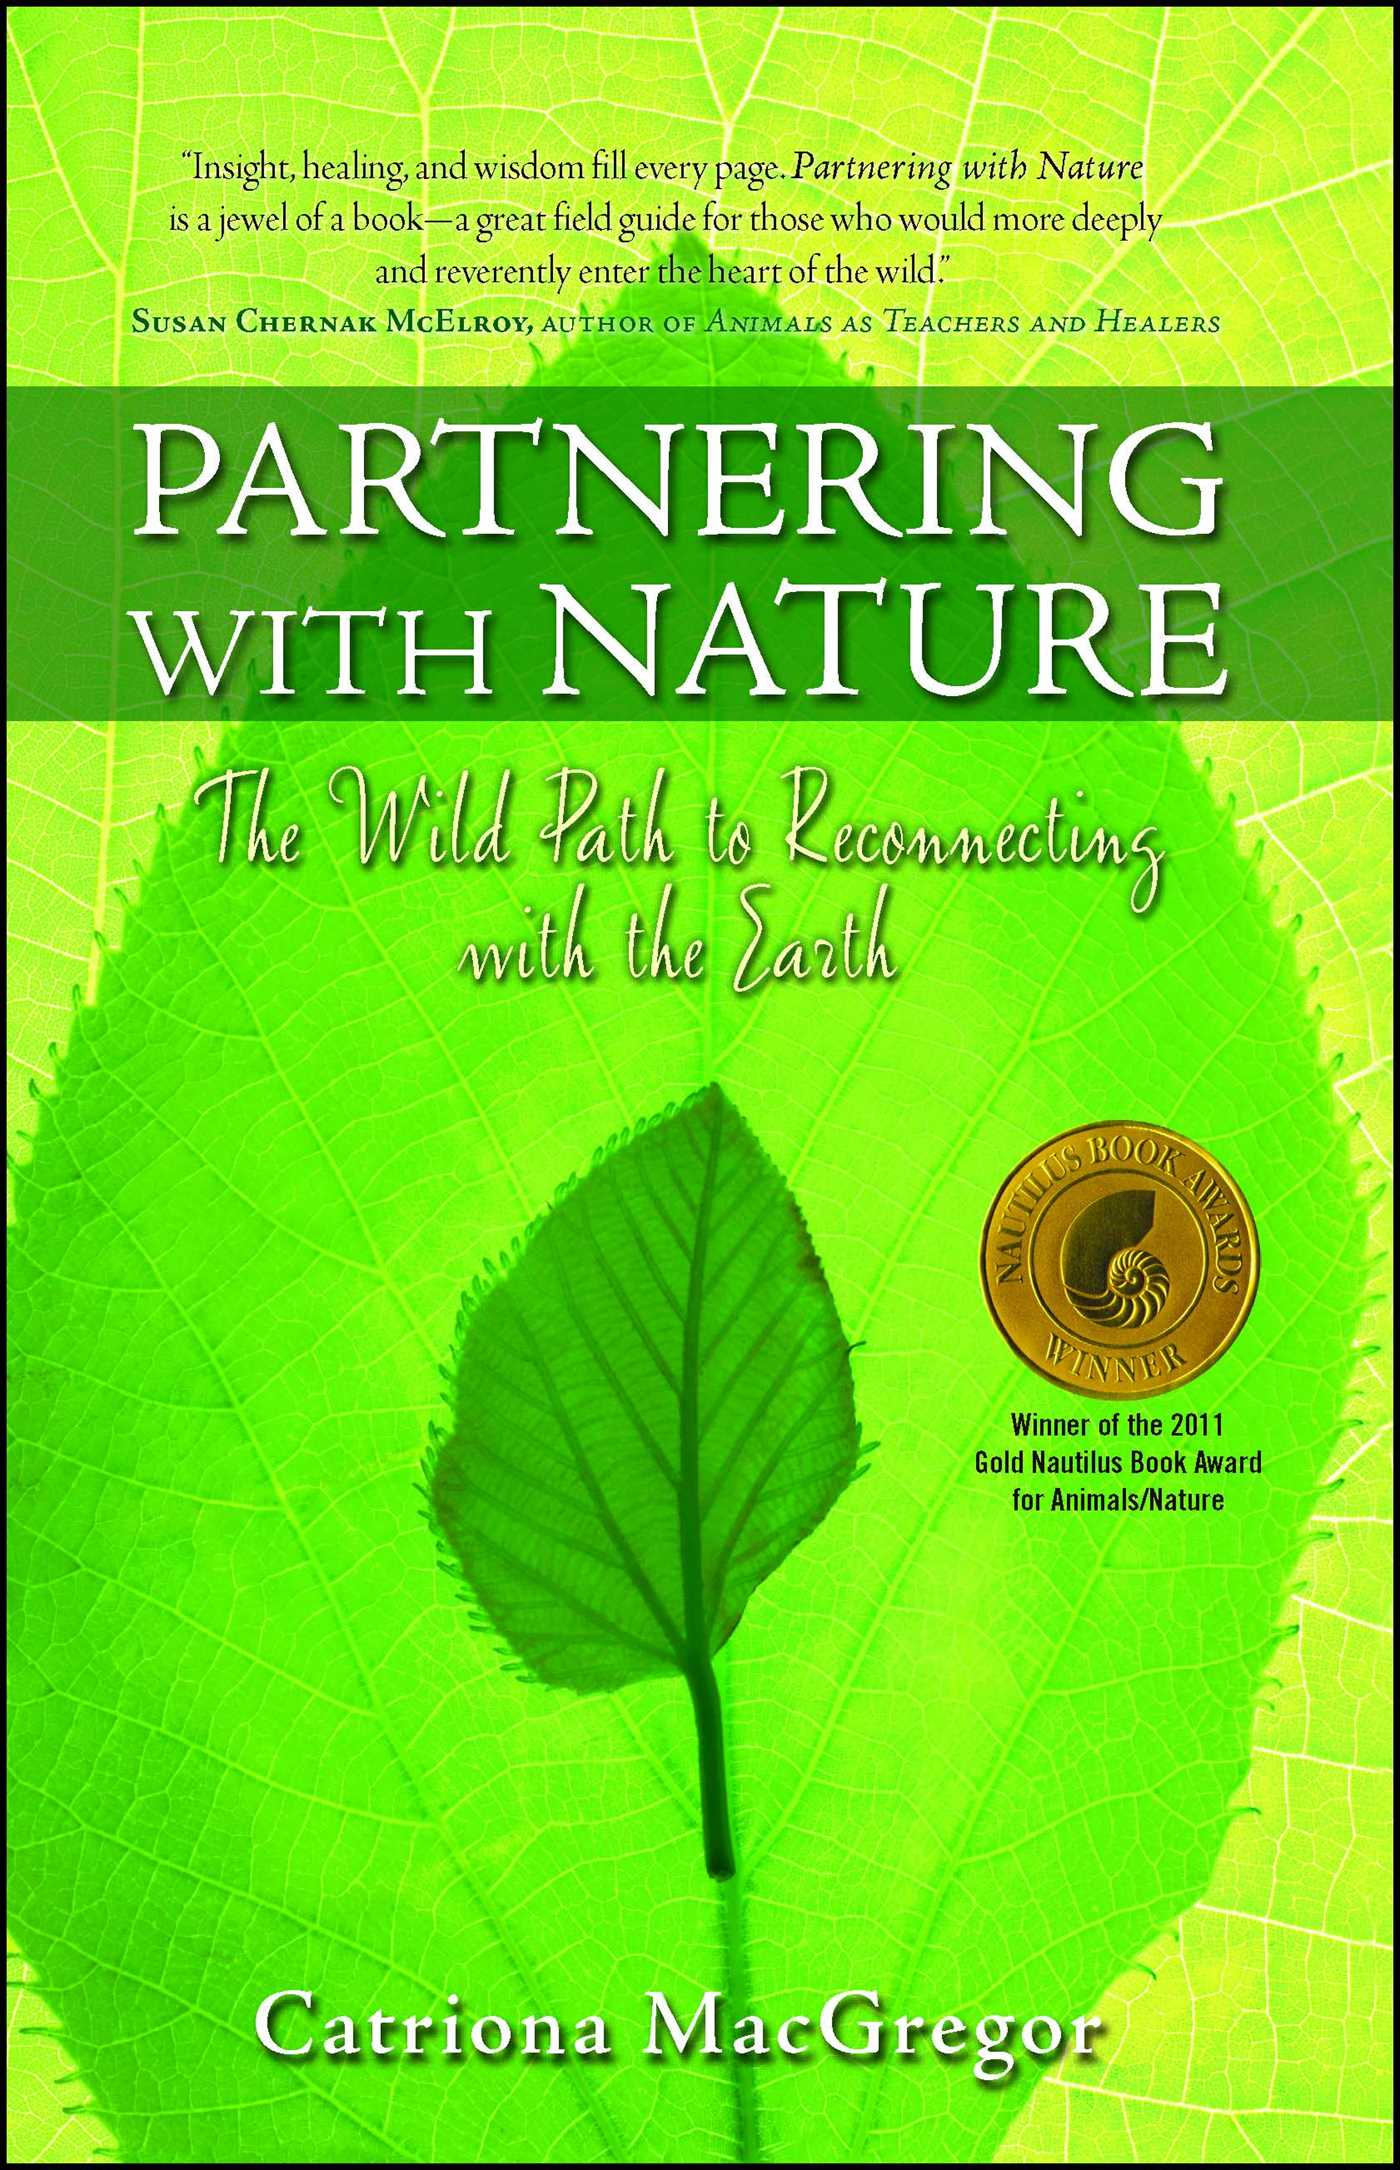 Partnering-with-nature-9781582702193_hr